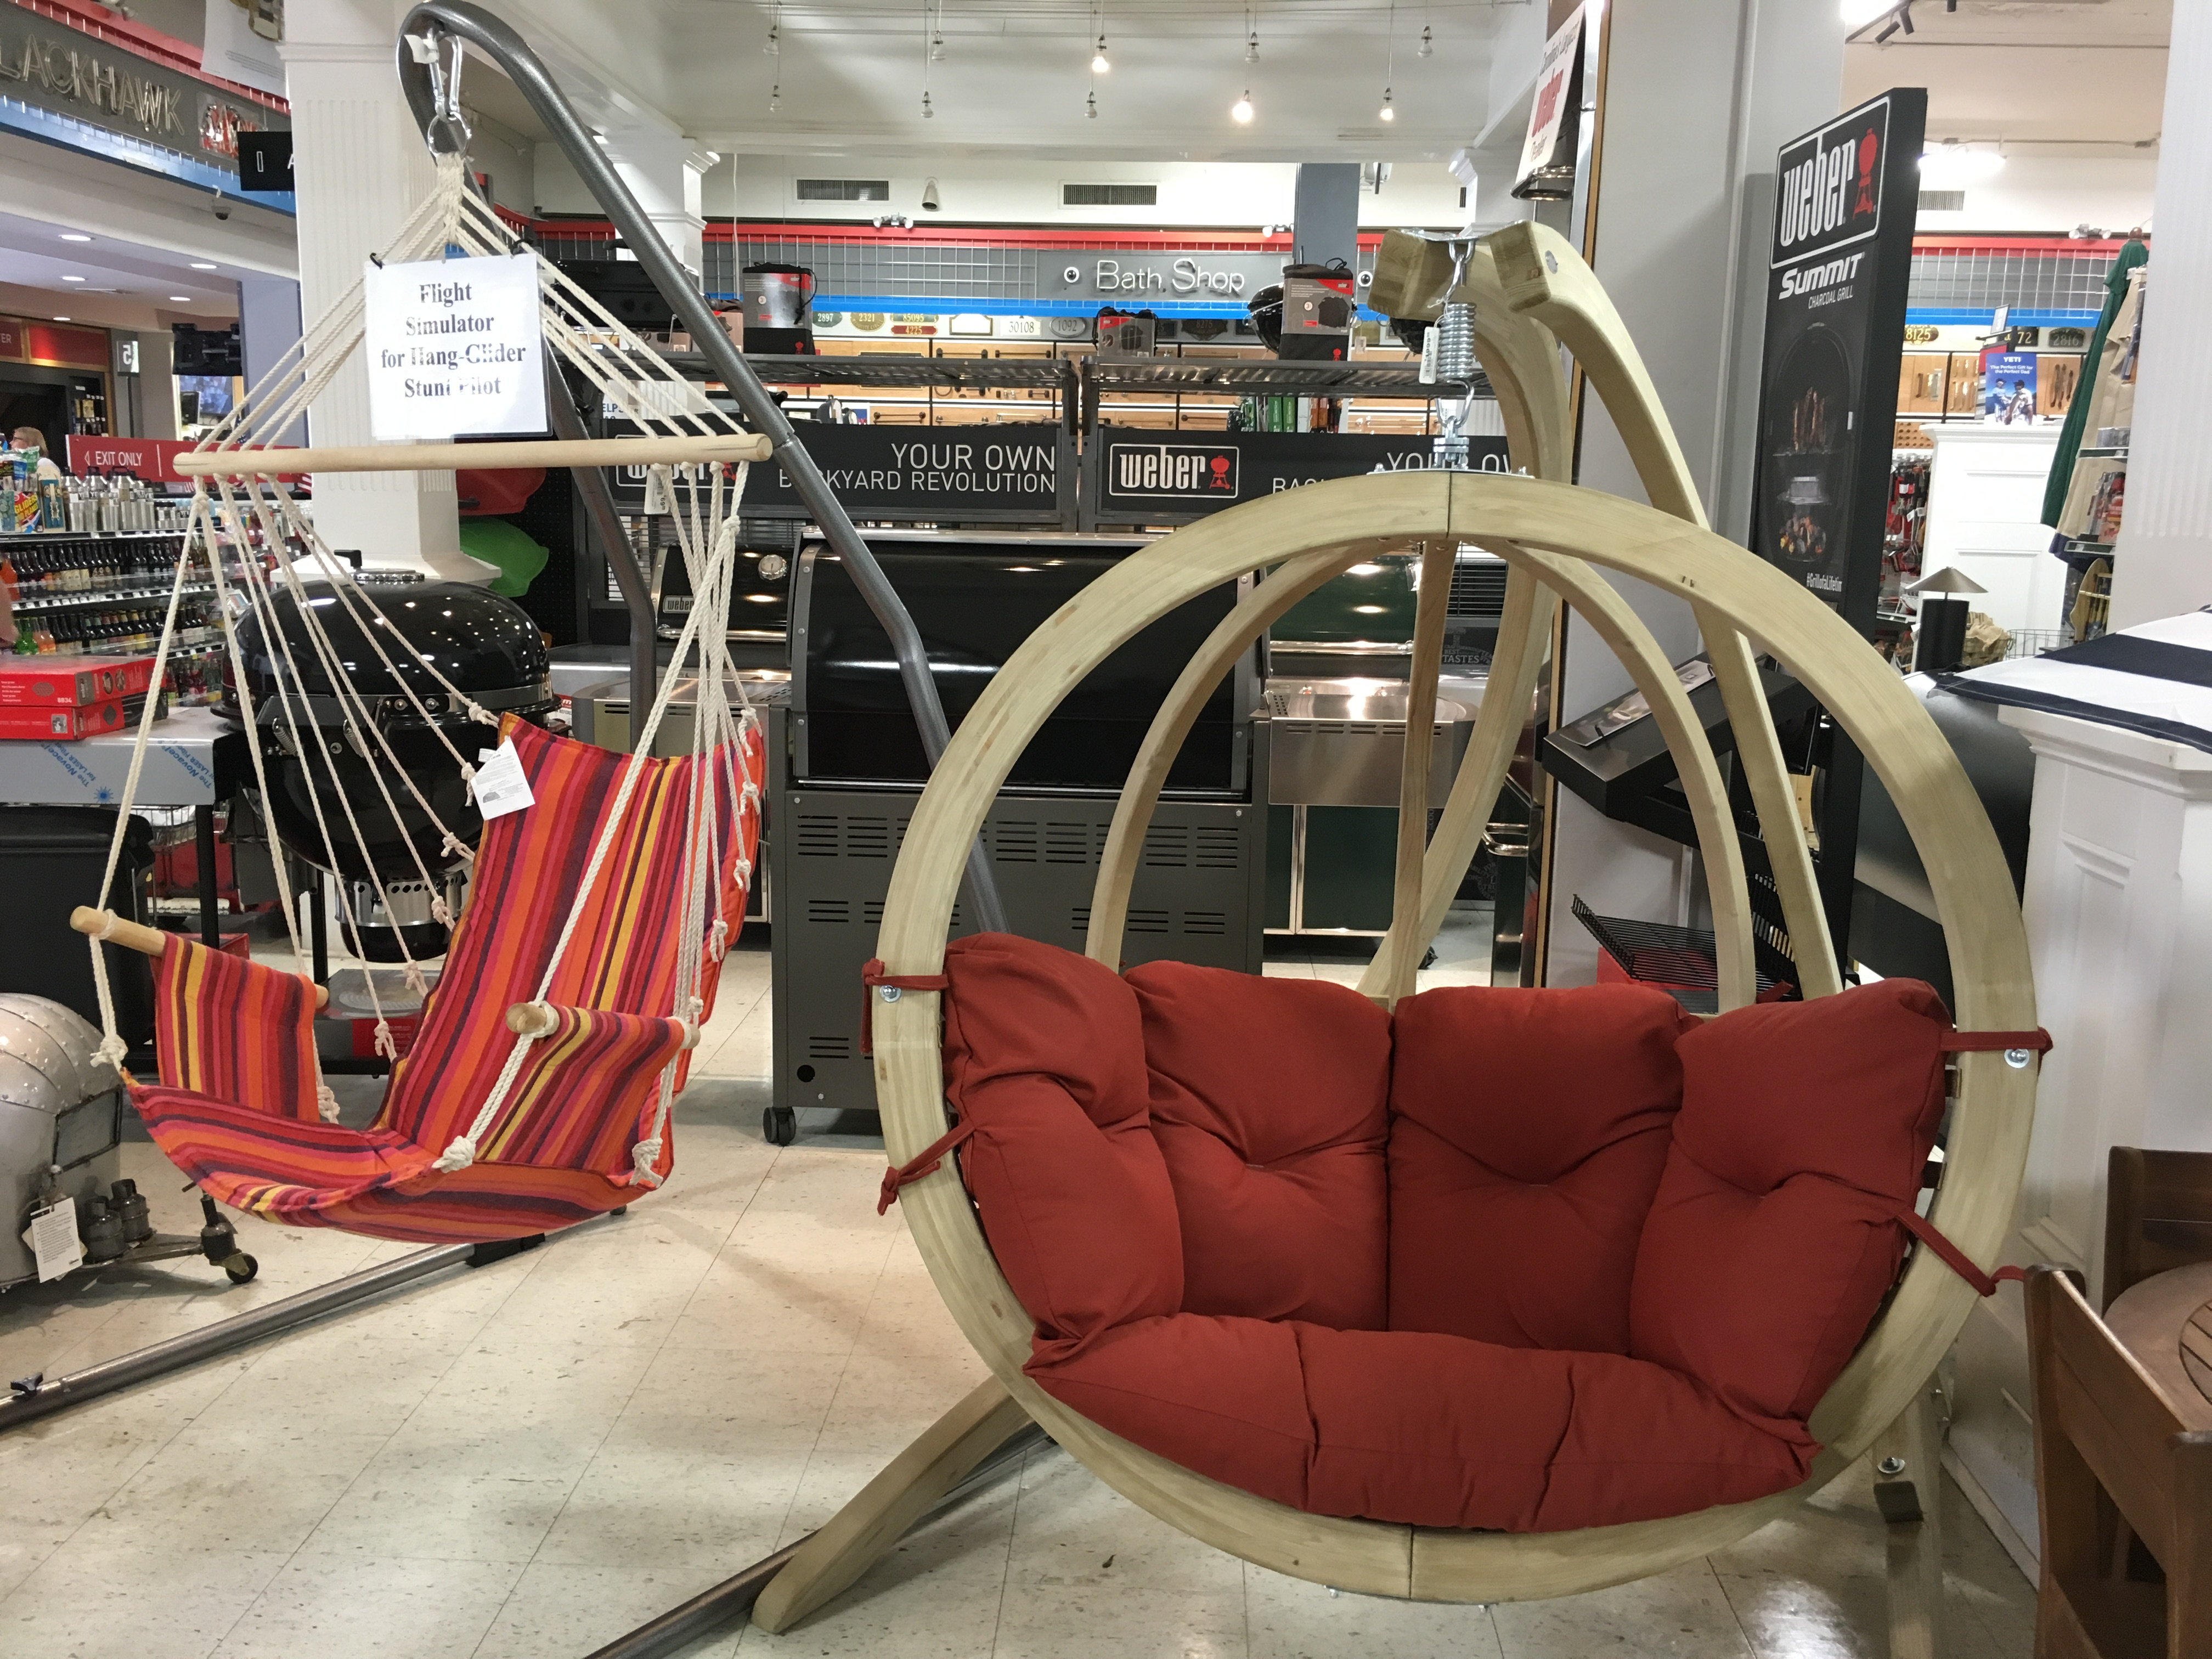 Hanging chairs and gliders from Blackhawk Hardware